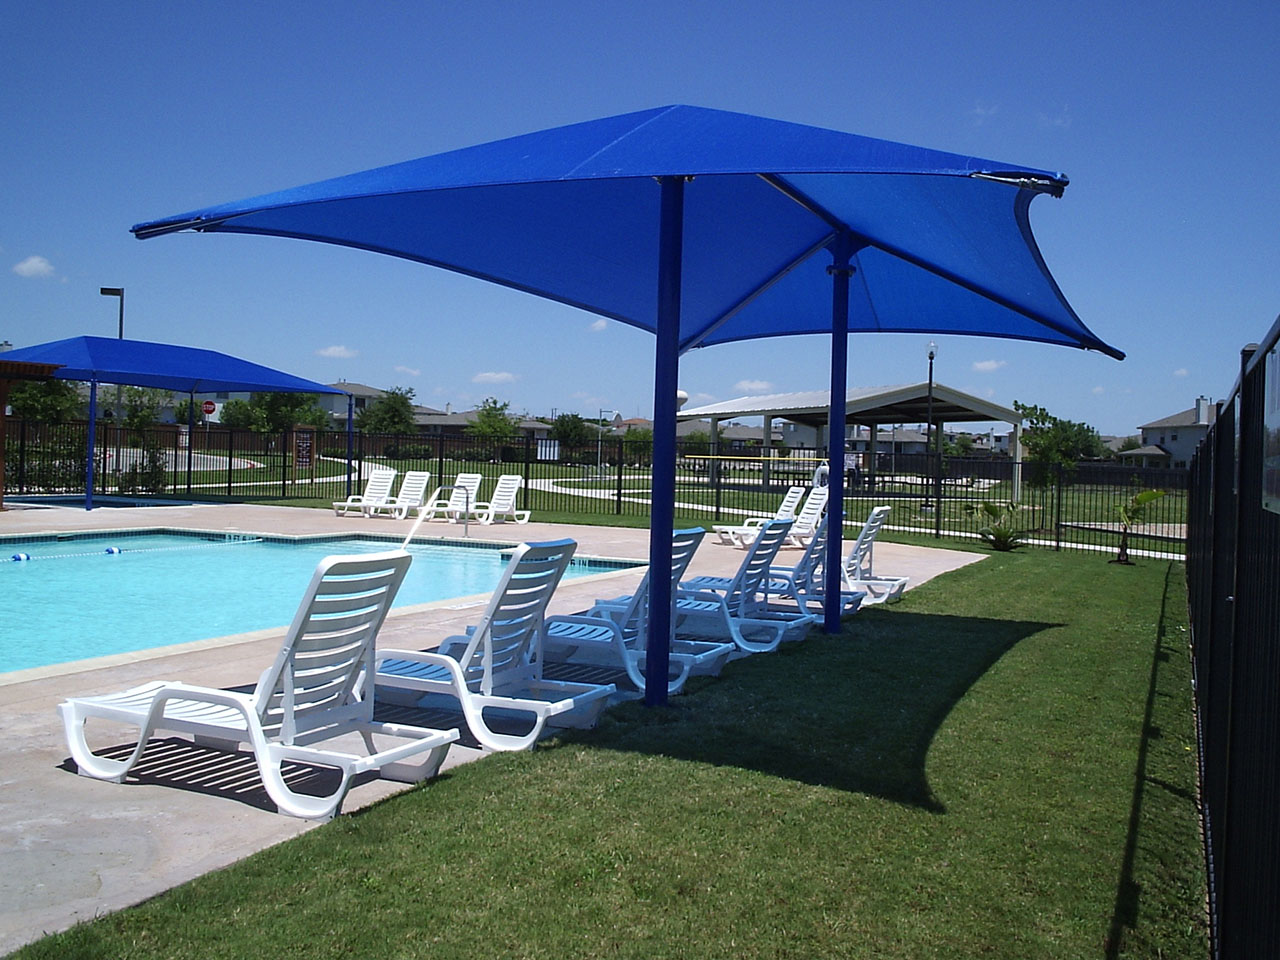 Community Pool Shade Structures - Heatherwilde HOA Community Pool